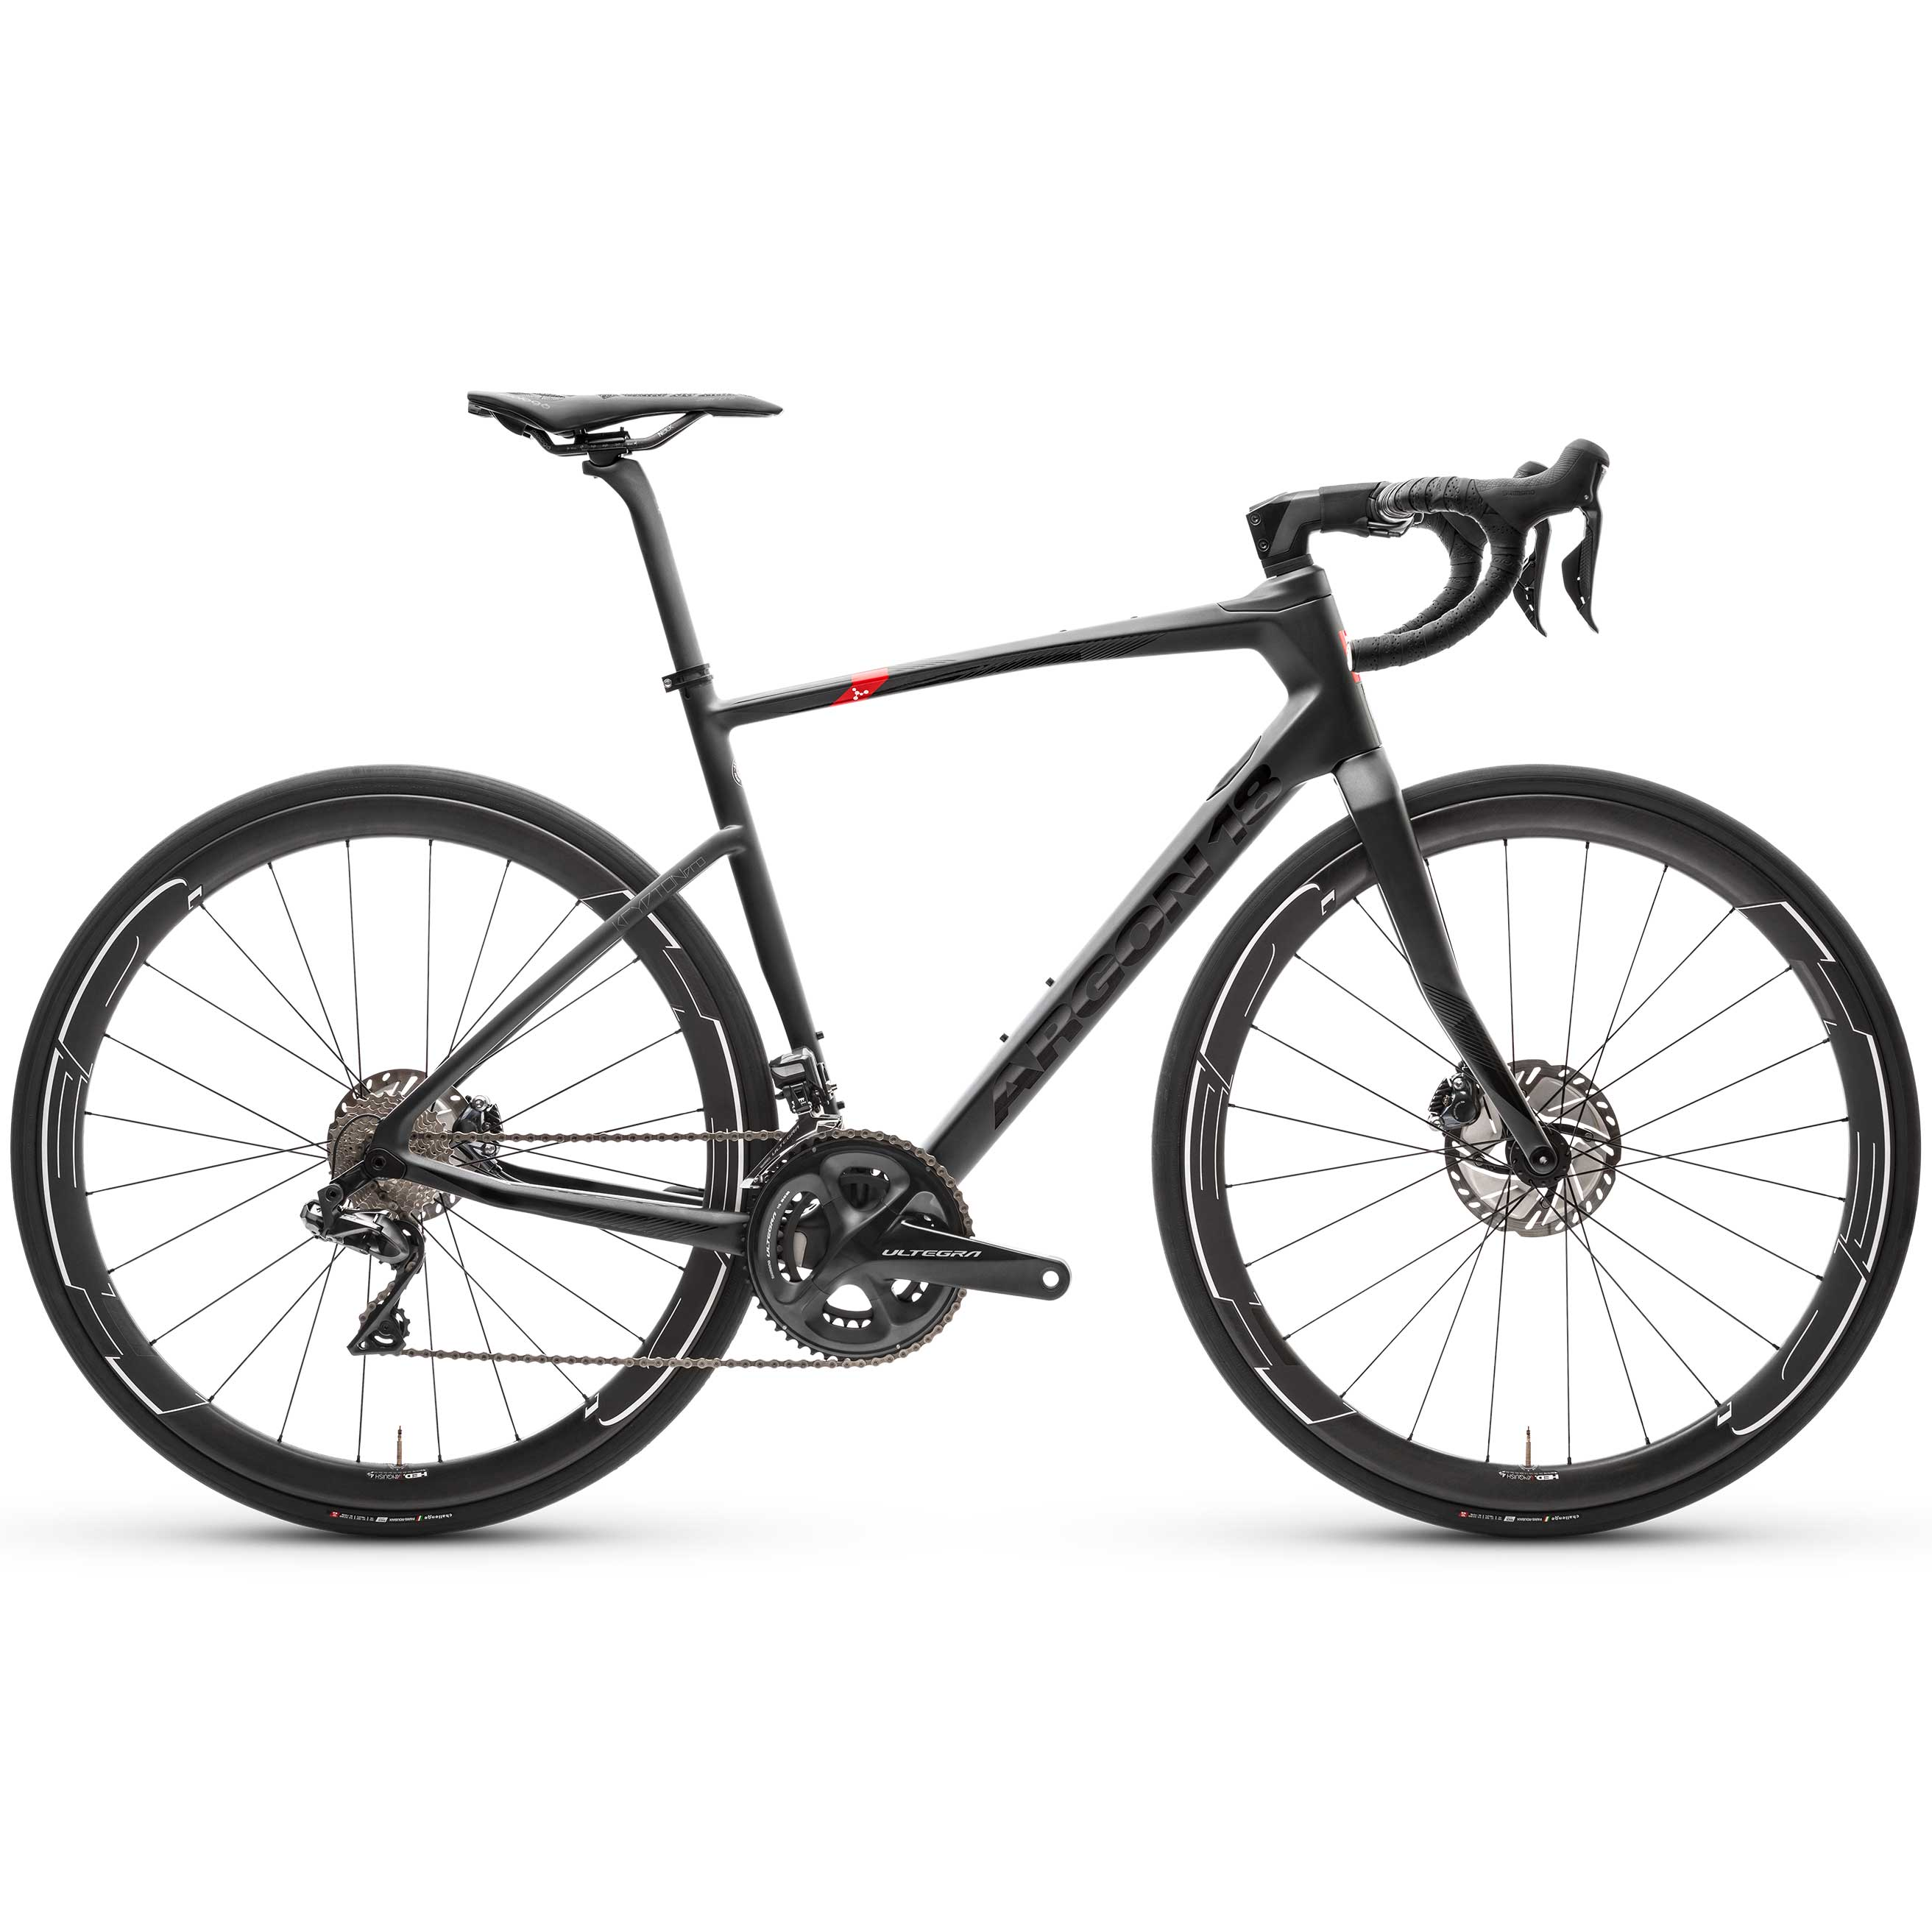 Argon 18 Krypton Pro Ultegra Di2 Road Bike